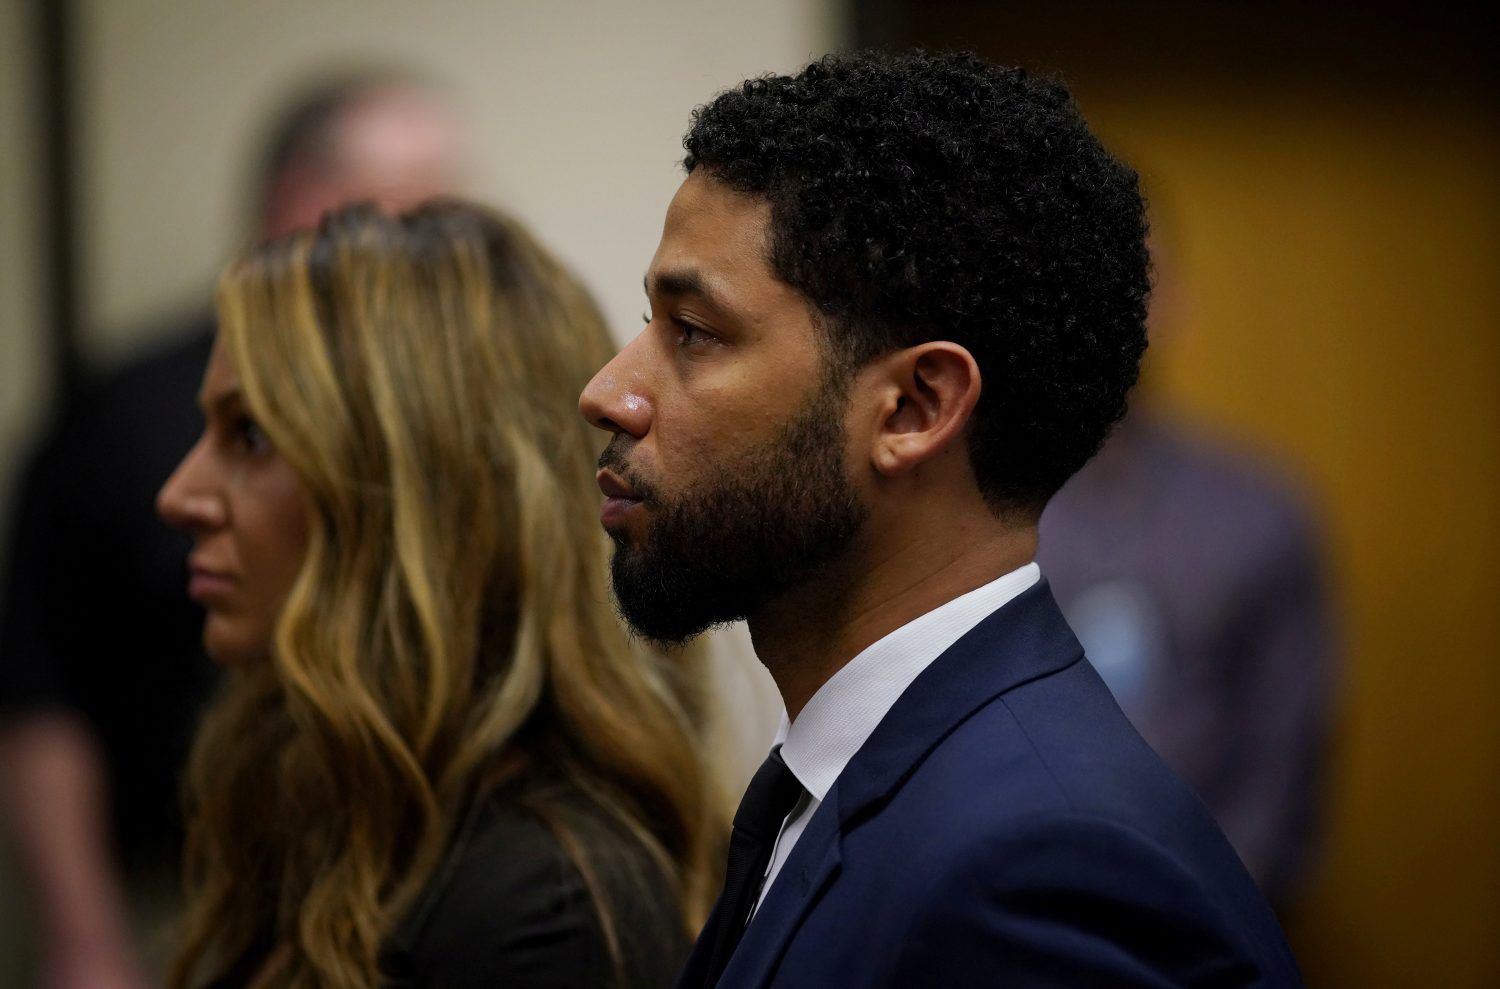 FILE PHOTO: Actor Jussie Smollett appears at a hearing for judge assignment with his attorney Tina Glandian (L), at the Leighton Criminal Court Building in Chicago, Illinois, U.S., March 14, 2019. E. Jason Wambsgans/Chicago Tribune/Pool via REUTERS/File Photo